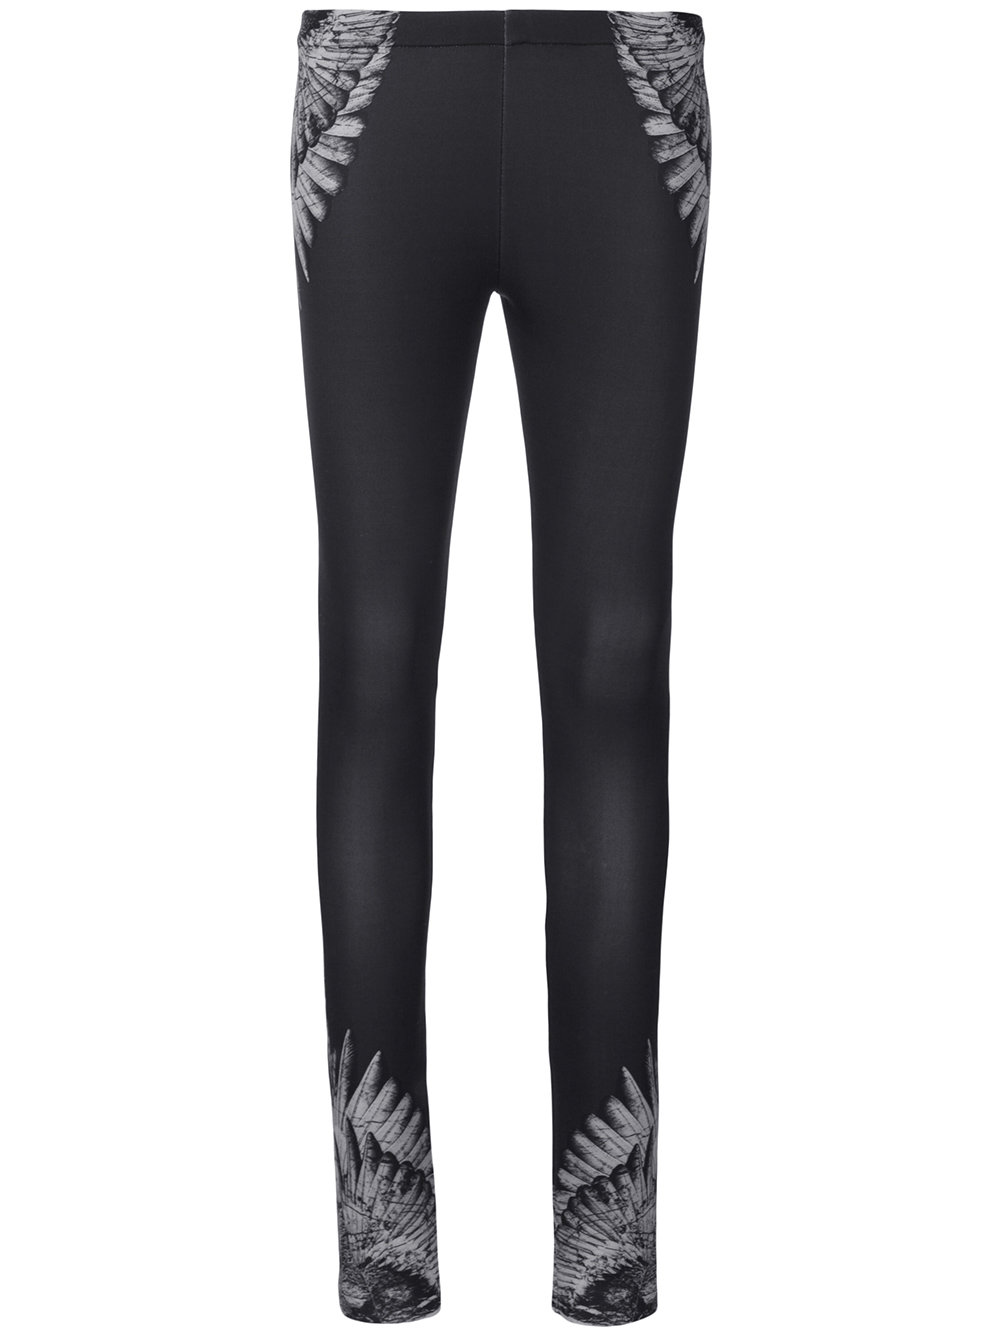 MARCELO BURLON WOMAN PANTS